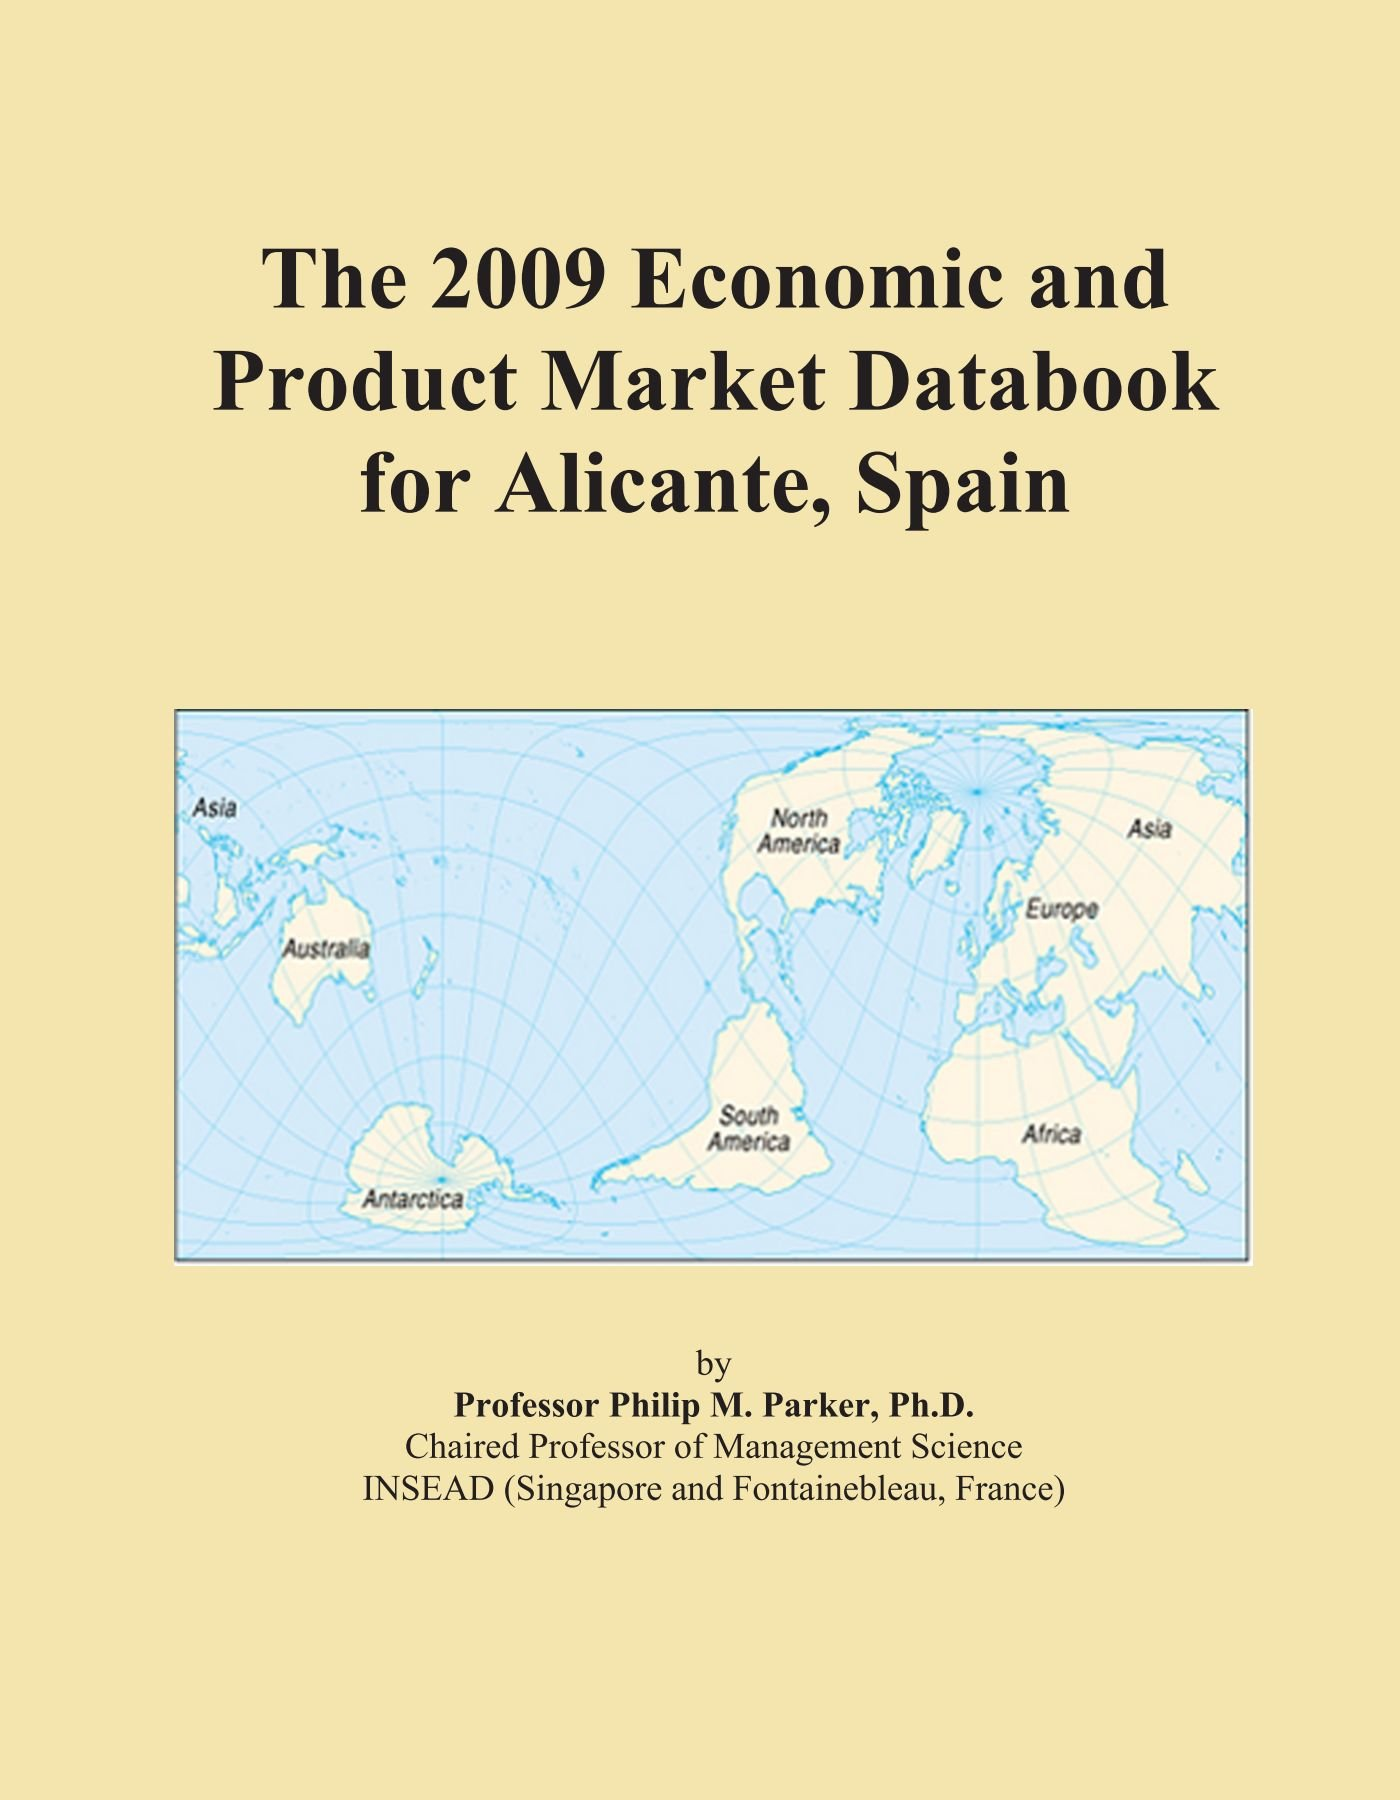 The 2009 Economic and Product Market Databook for Alicante, Spain PDF